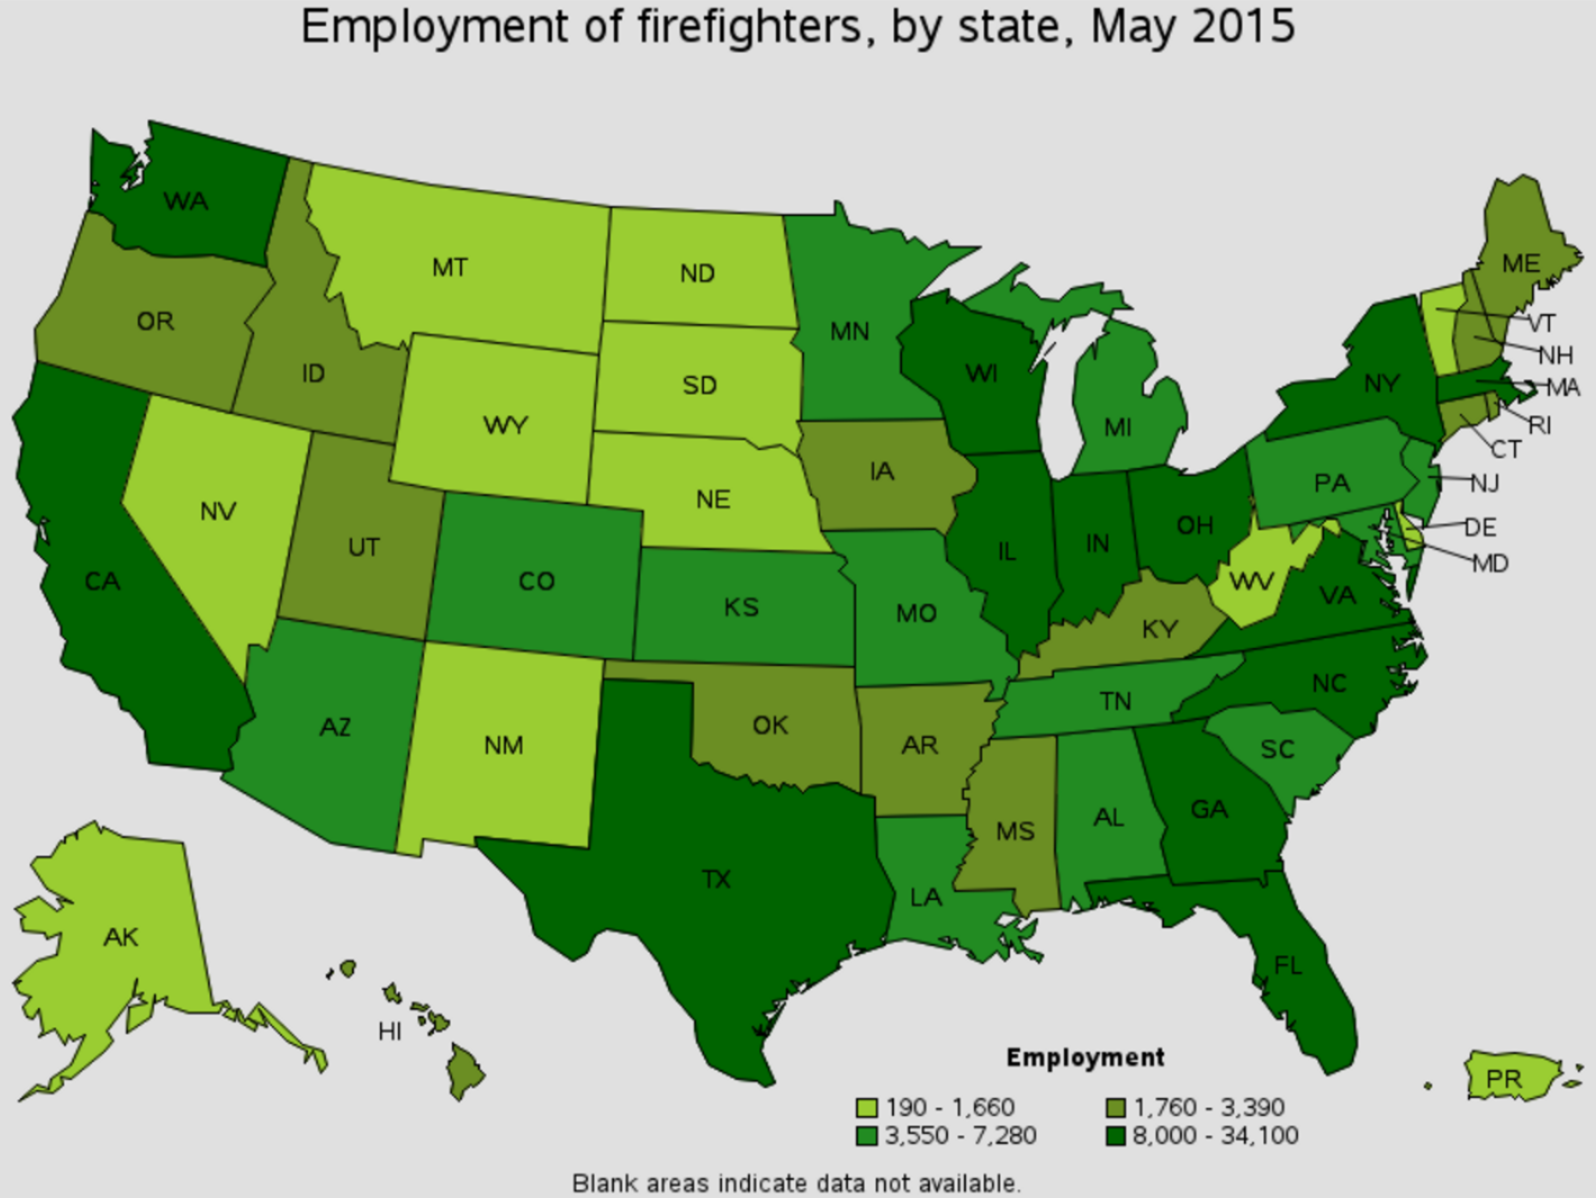 firefighter job outlook by state Winslow Arkansas